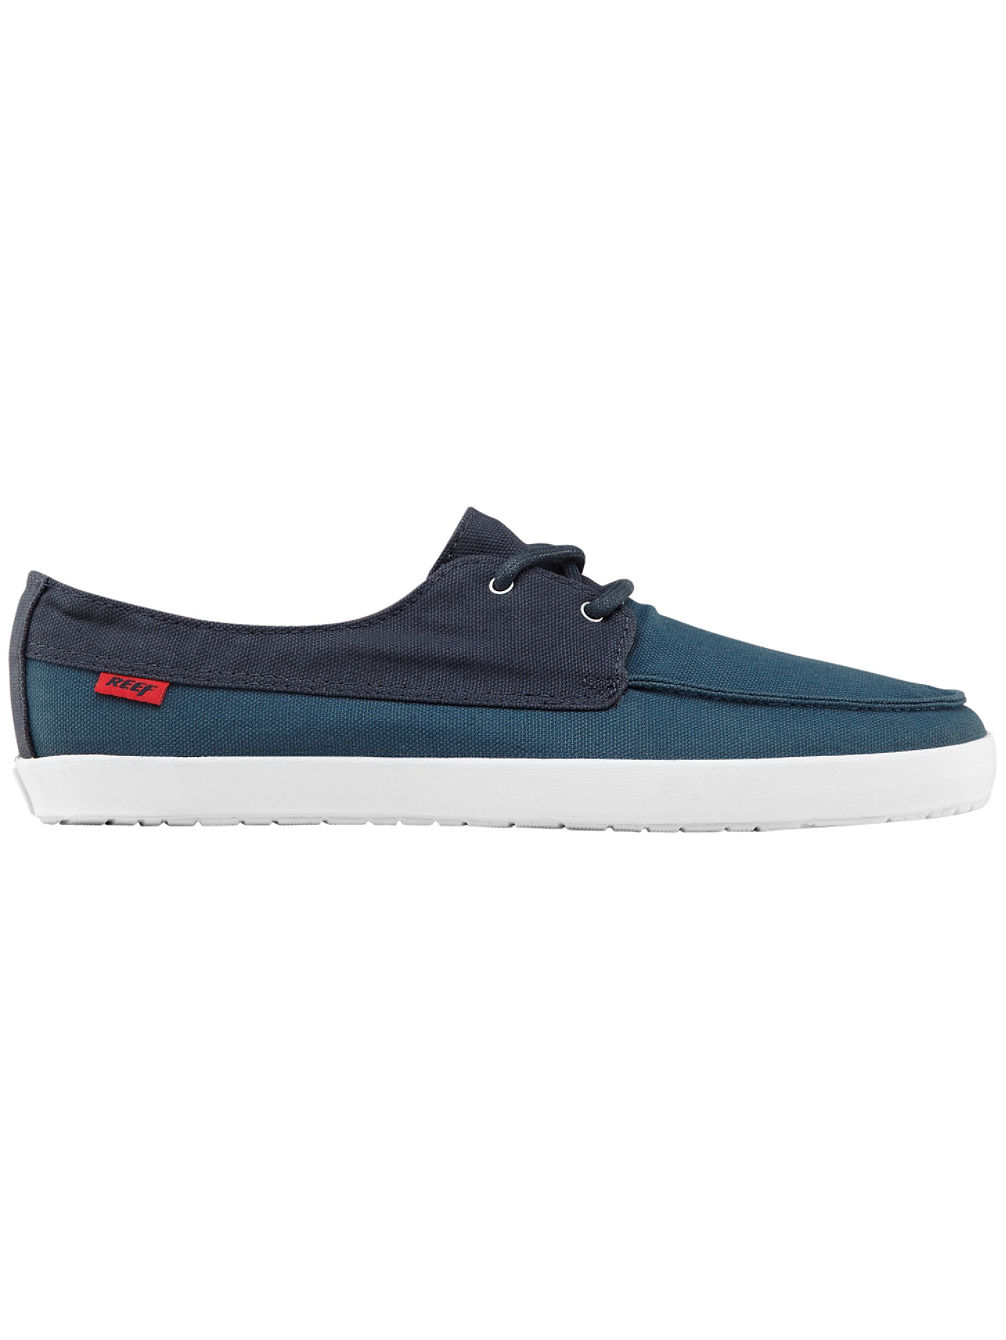 reef-deckhand-low-sneakers